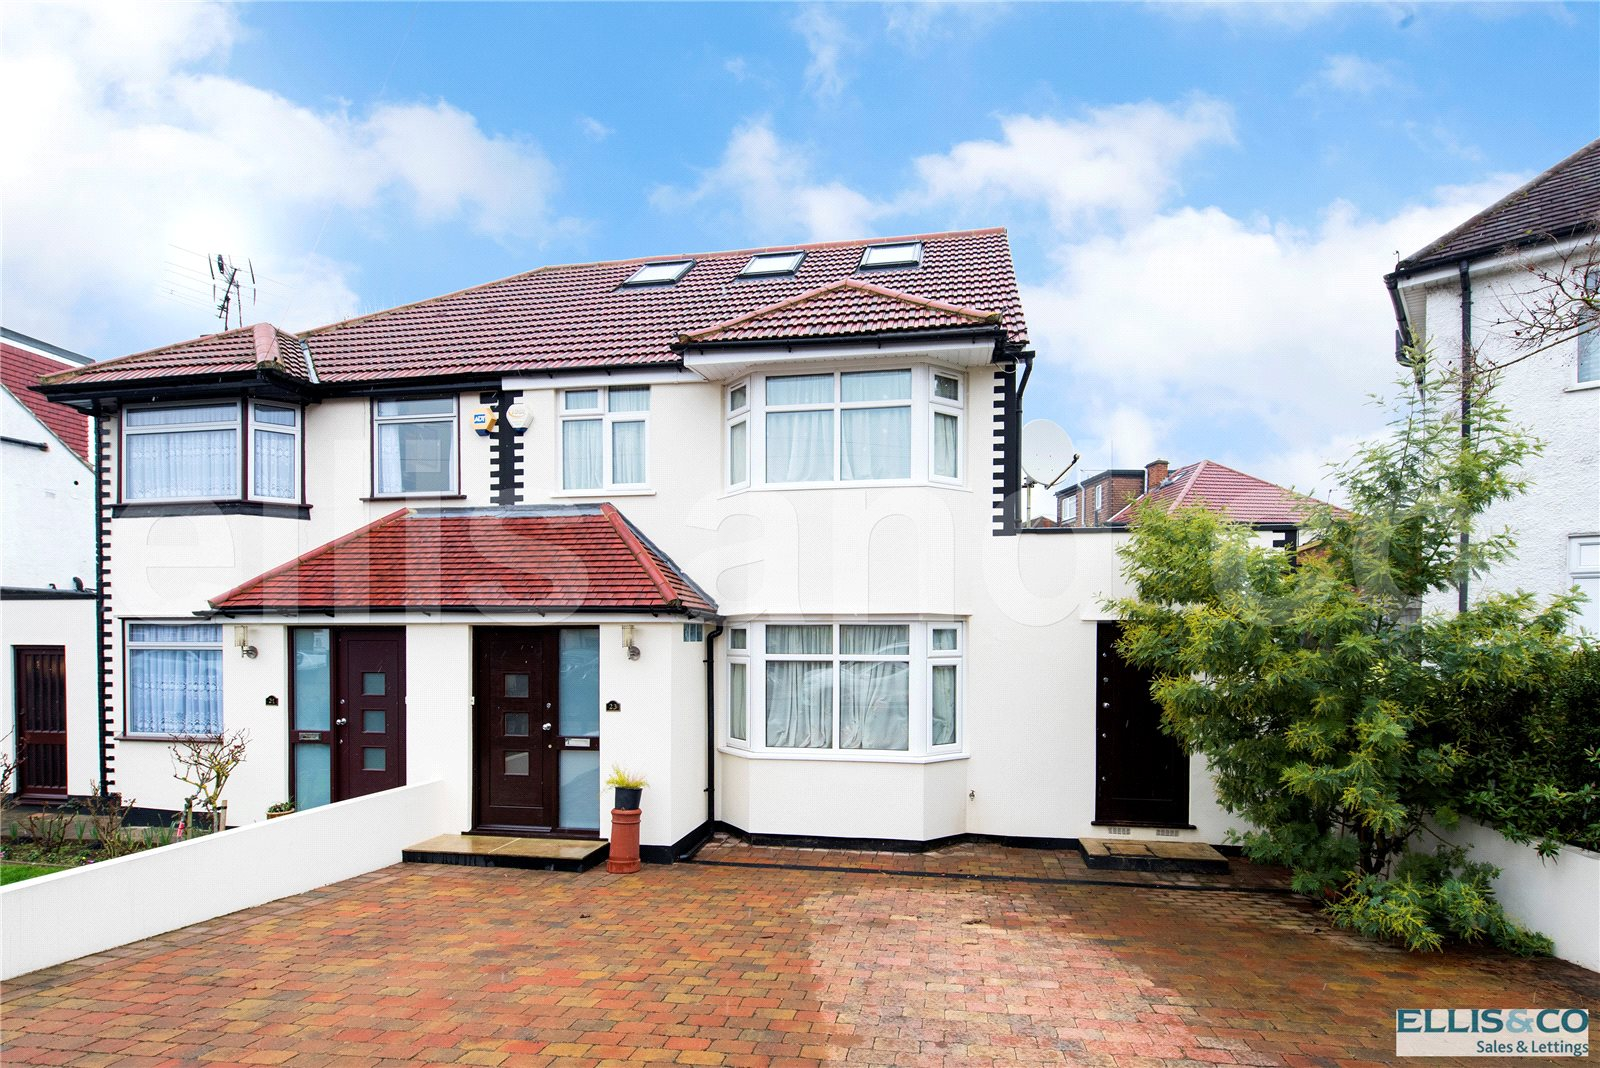 4 Bedrooms Semi Detached House for sale in Warwick Avenue Edgware Middlesex HA8